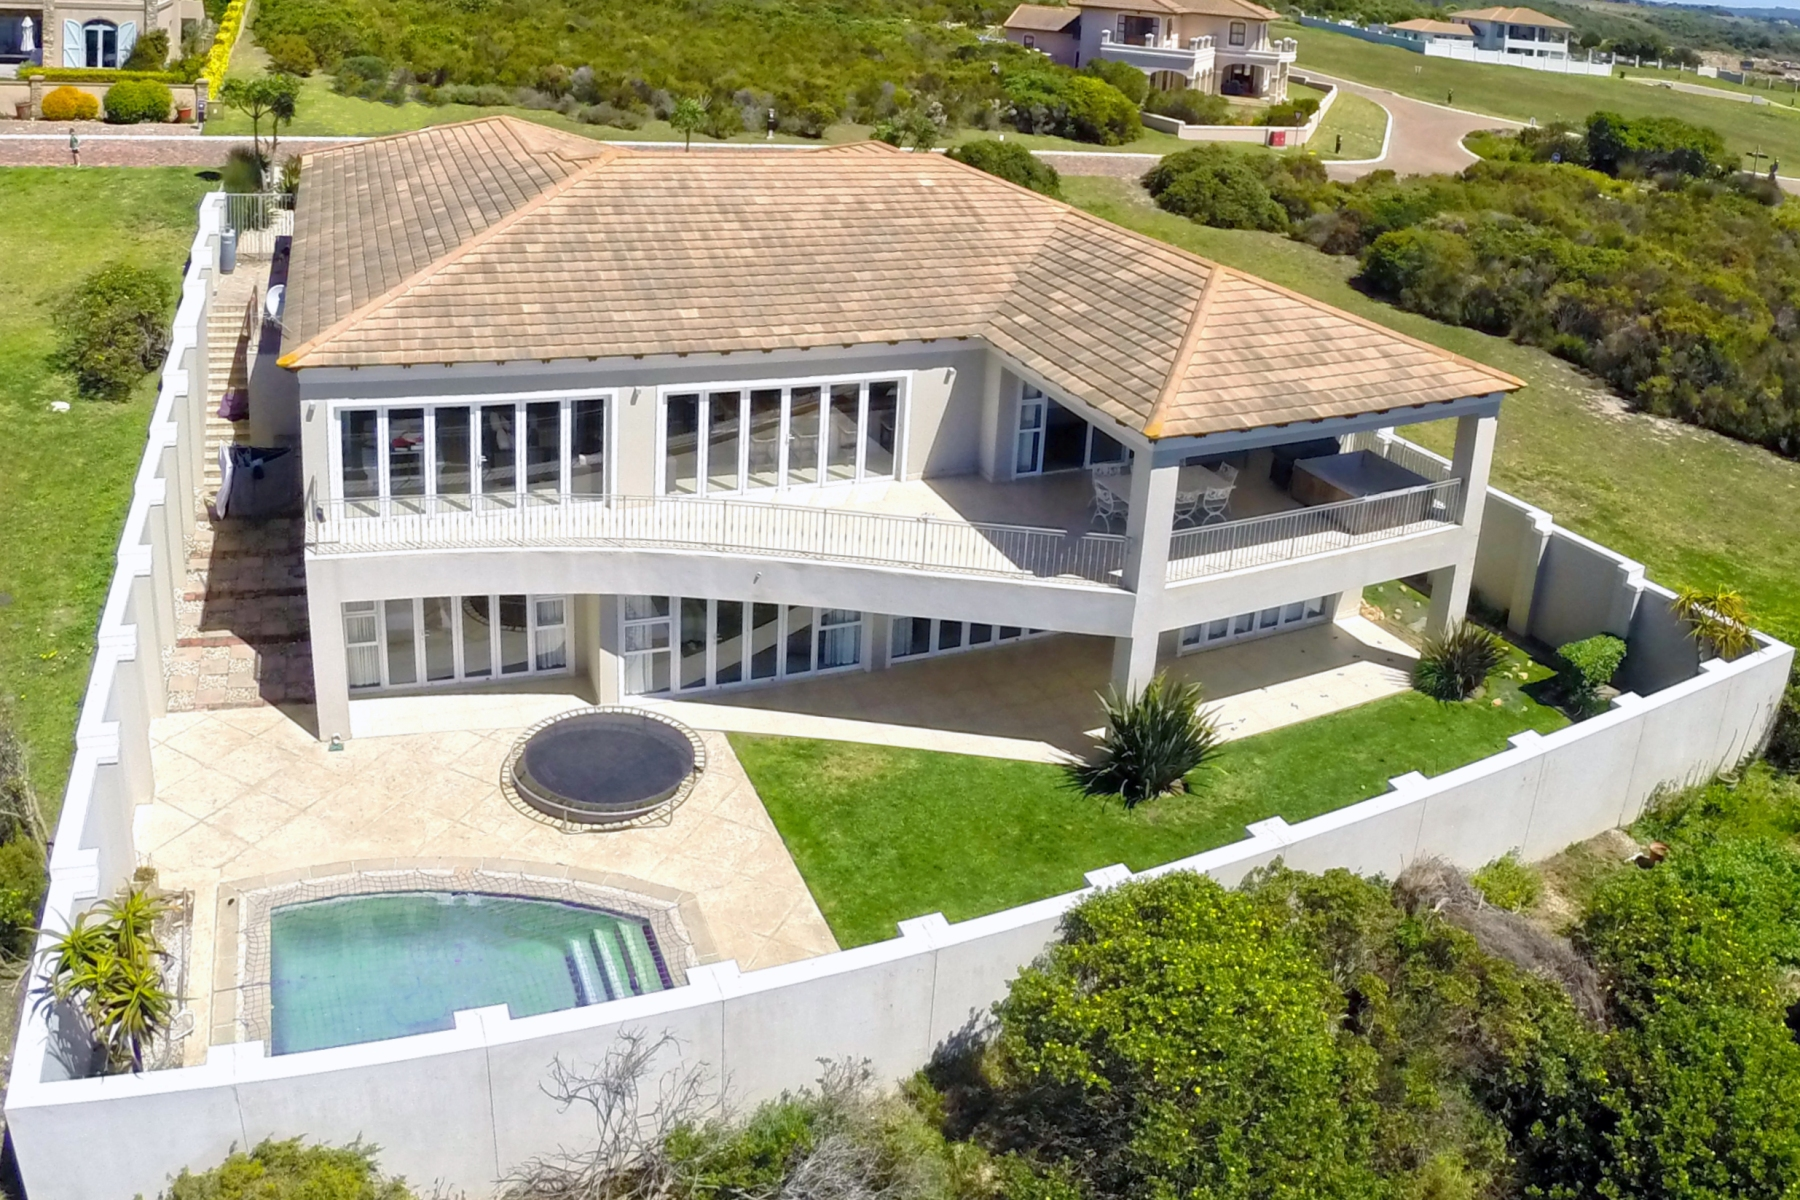 Single Family Home for Sale at Whale Rock & Wine Plettenberg Bay, Western Cape, 6600 South Africa